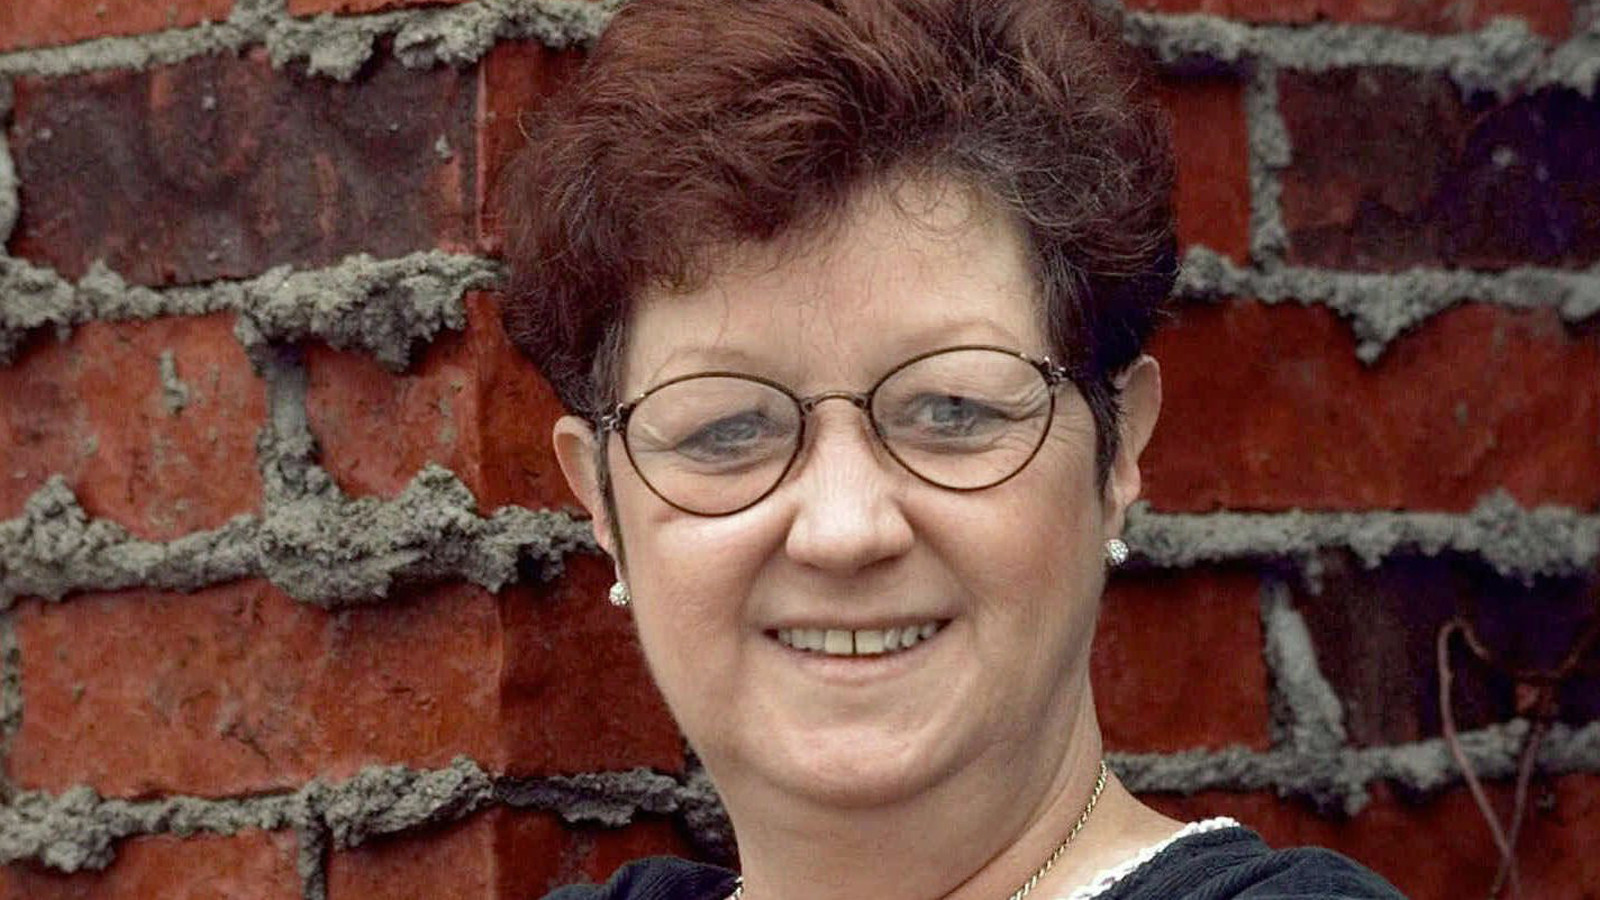 Norma McCorvey, once-anonymous plaintiff in 'Roe vs. Wade,' dies at 69